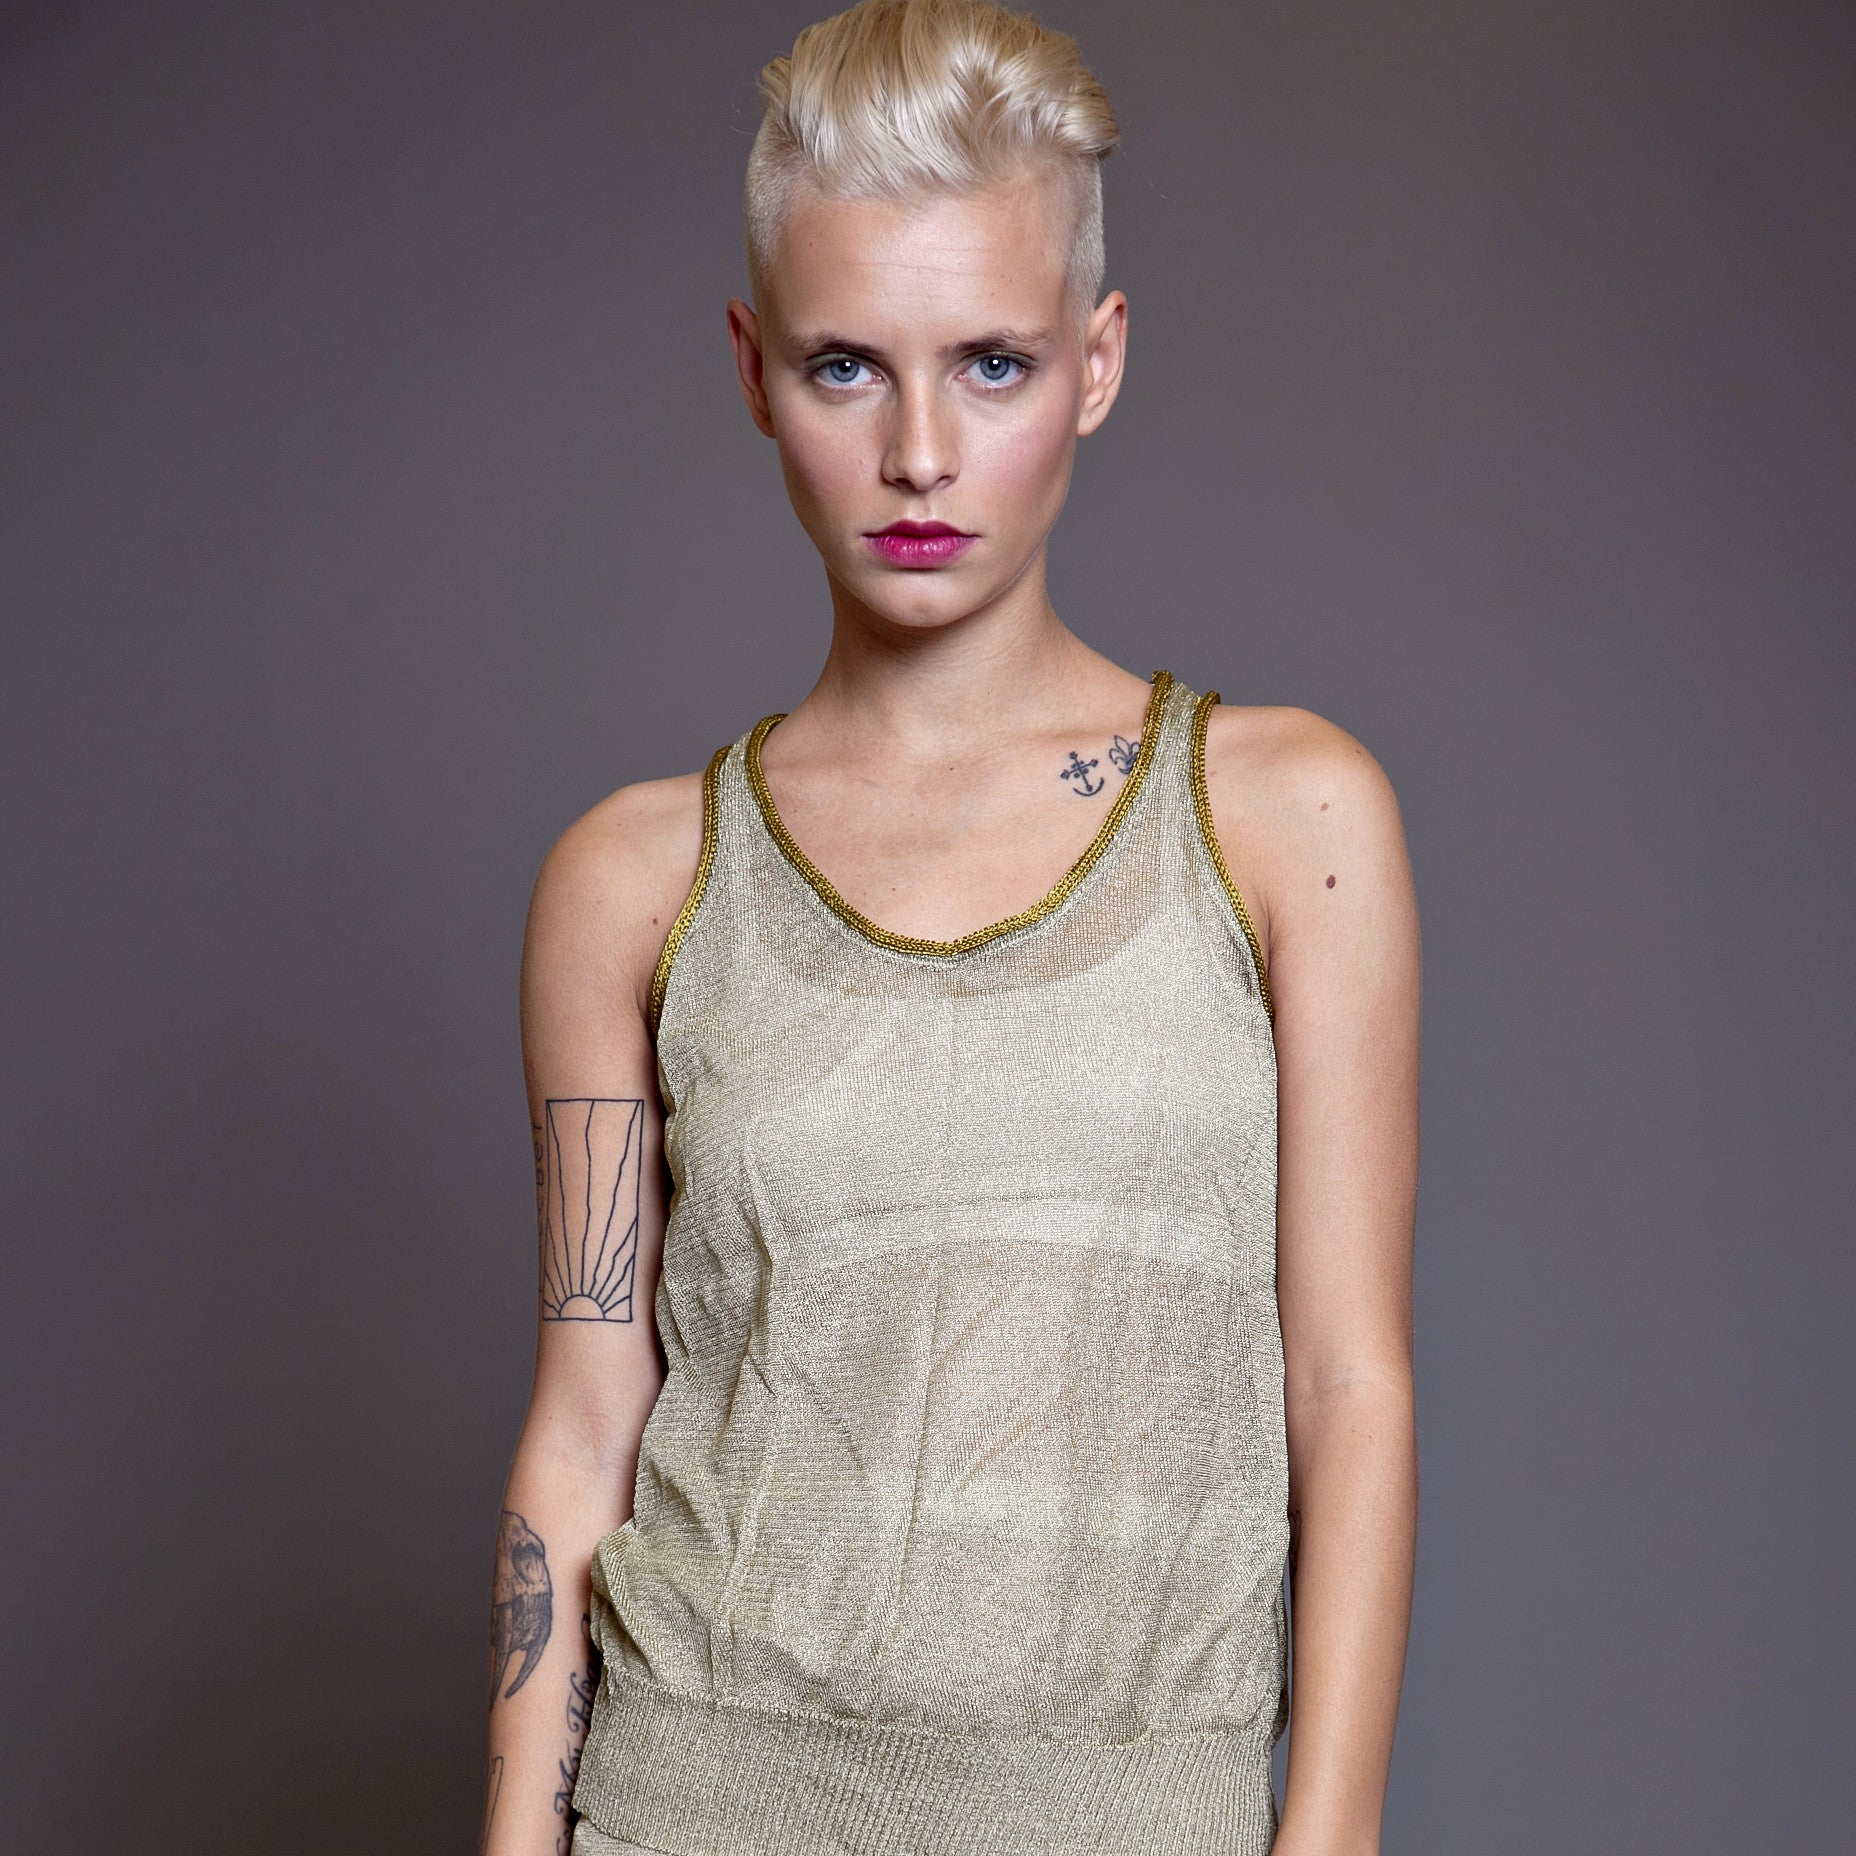 Sample sale- Metallic knit tank top size S-M color gold - DuendeFashion  - 5